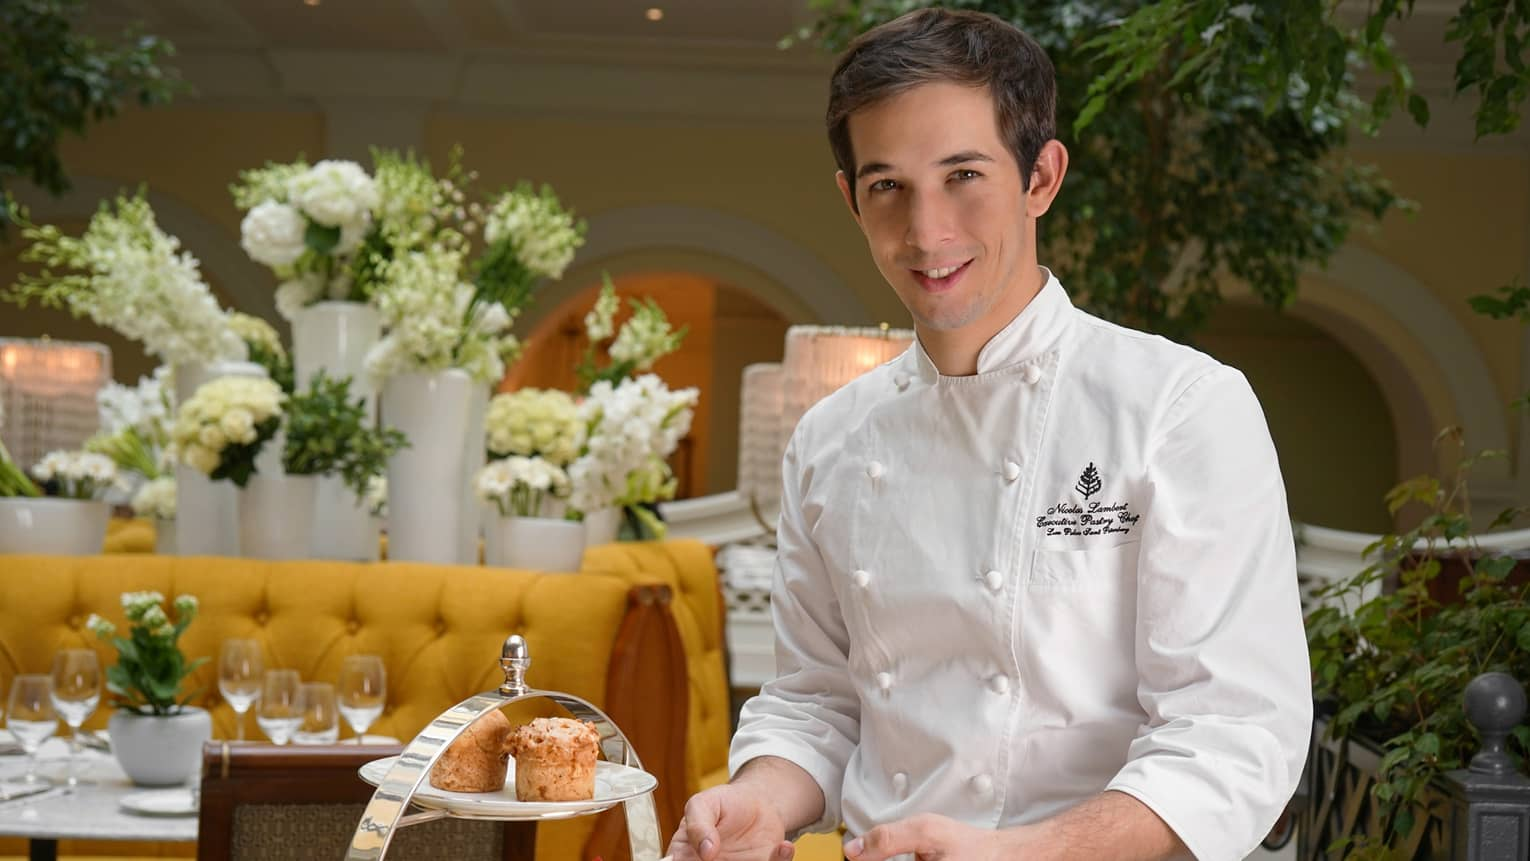 Portrait photo of Chef Nicolas Lambert holding plate with Afternoon Tea desserts